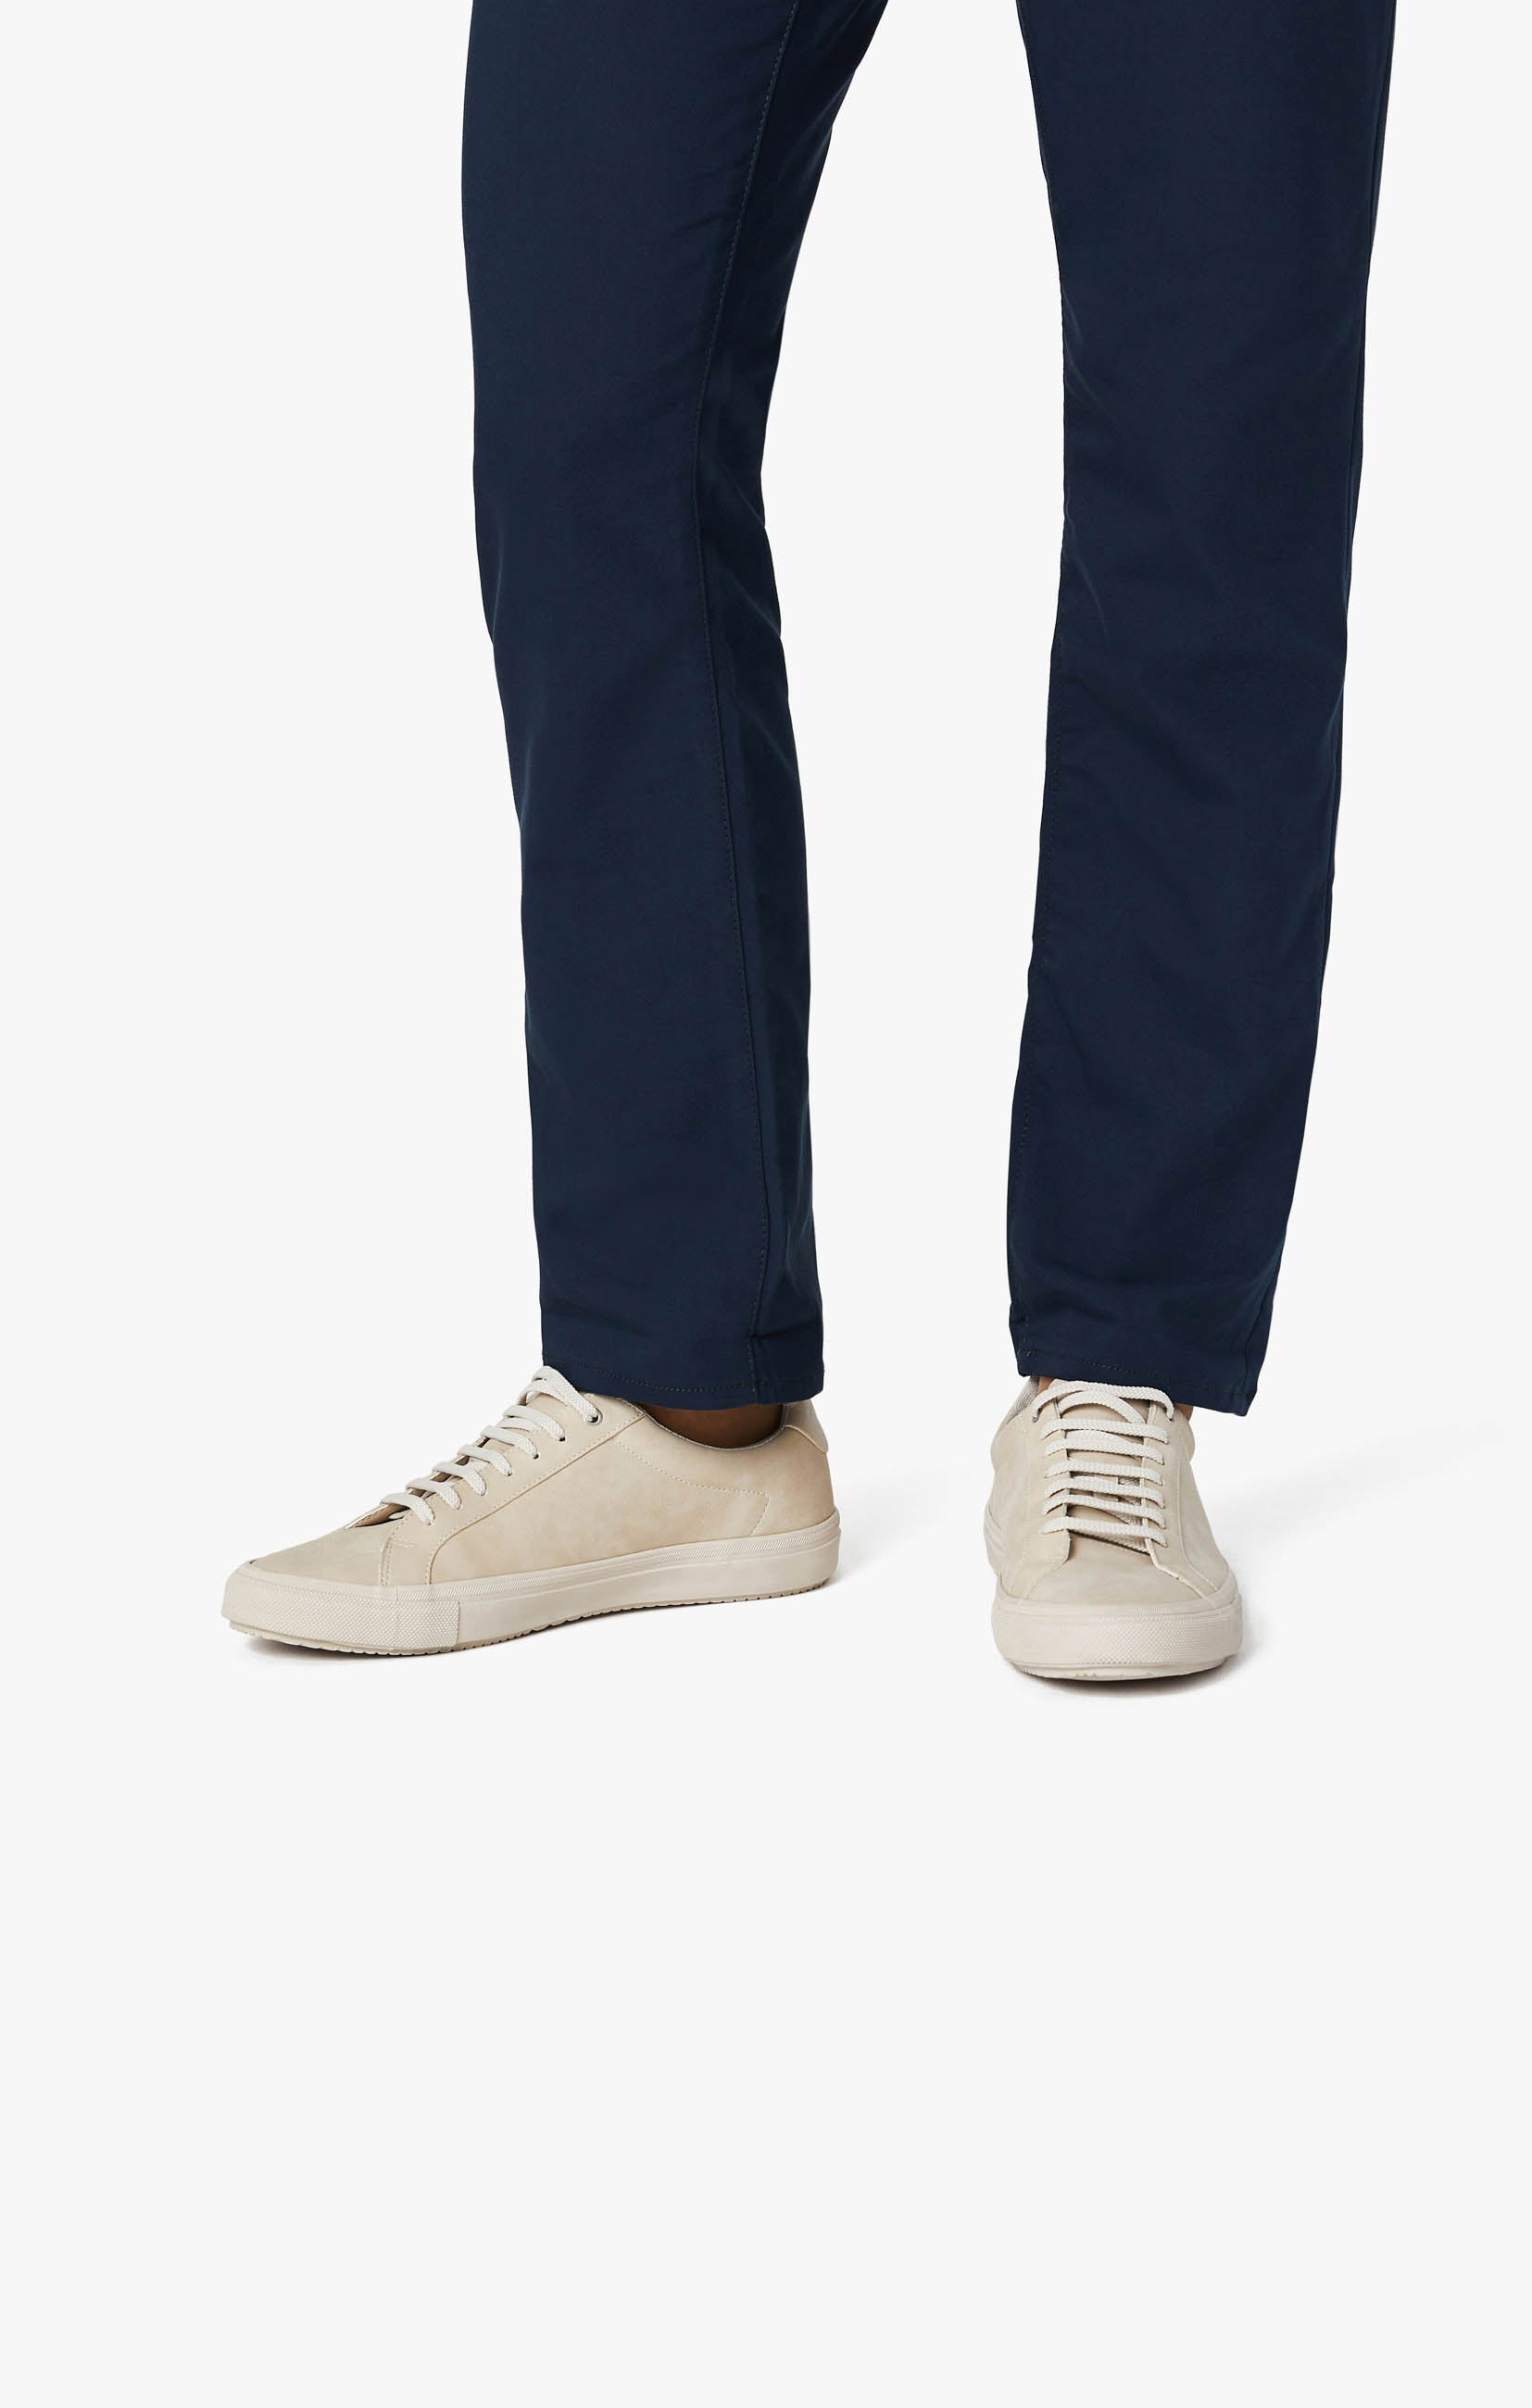 Charisma Relaxed Straight Commuter Pants In Navy Image 7